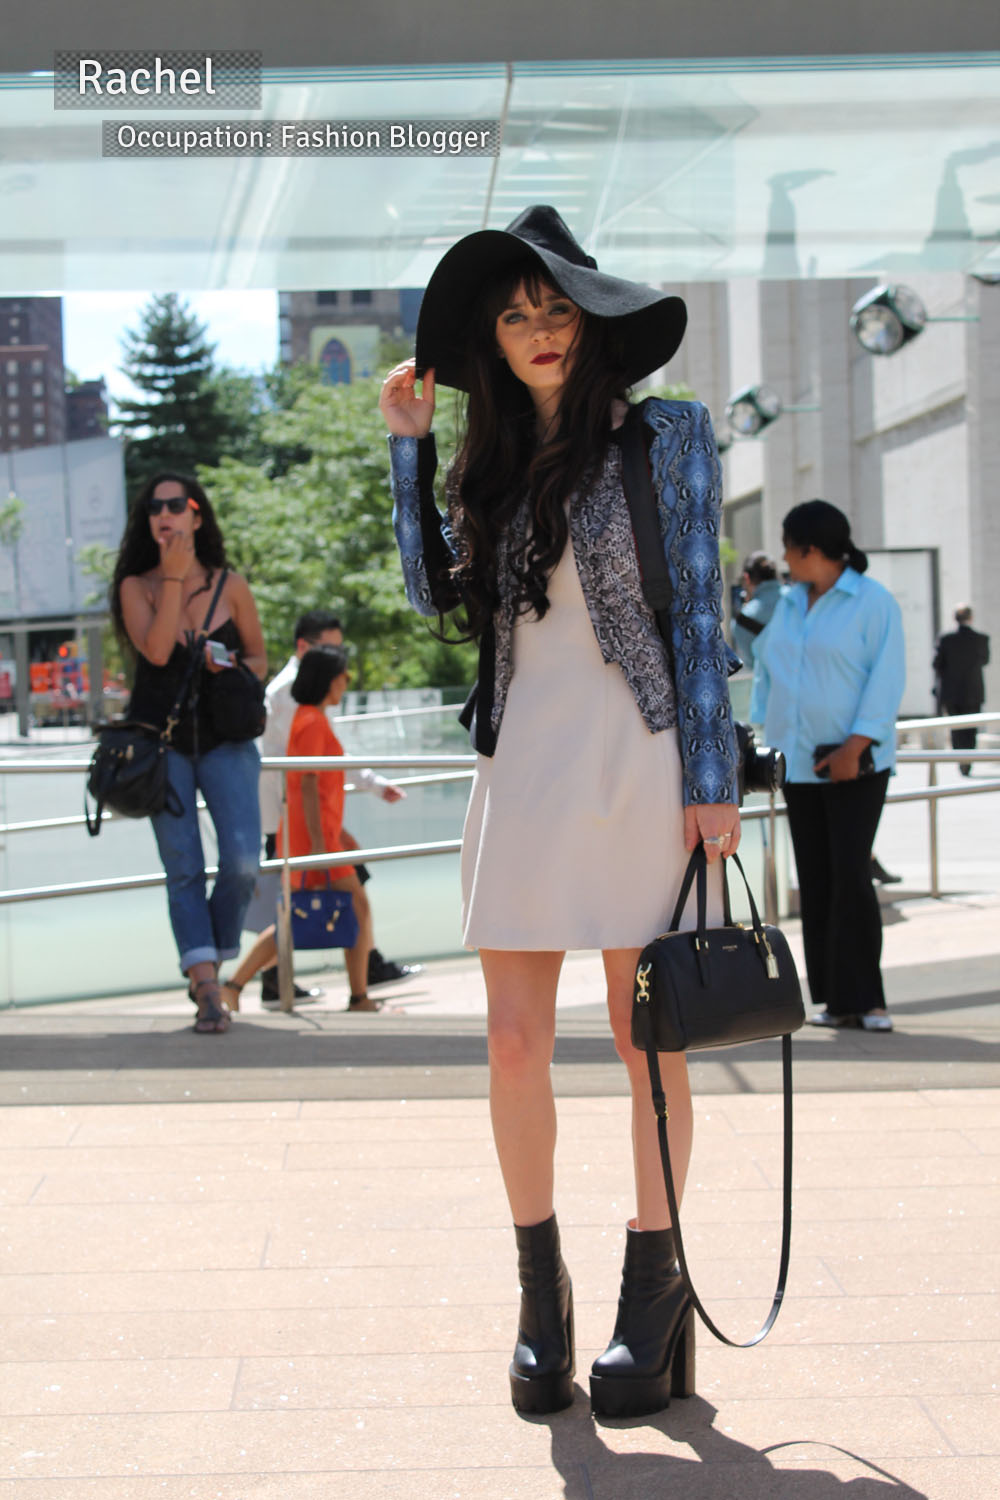 Corra's New York Fashion Week Street Style Blog | Day 1 - Rachel from New York